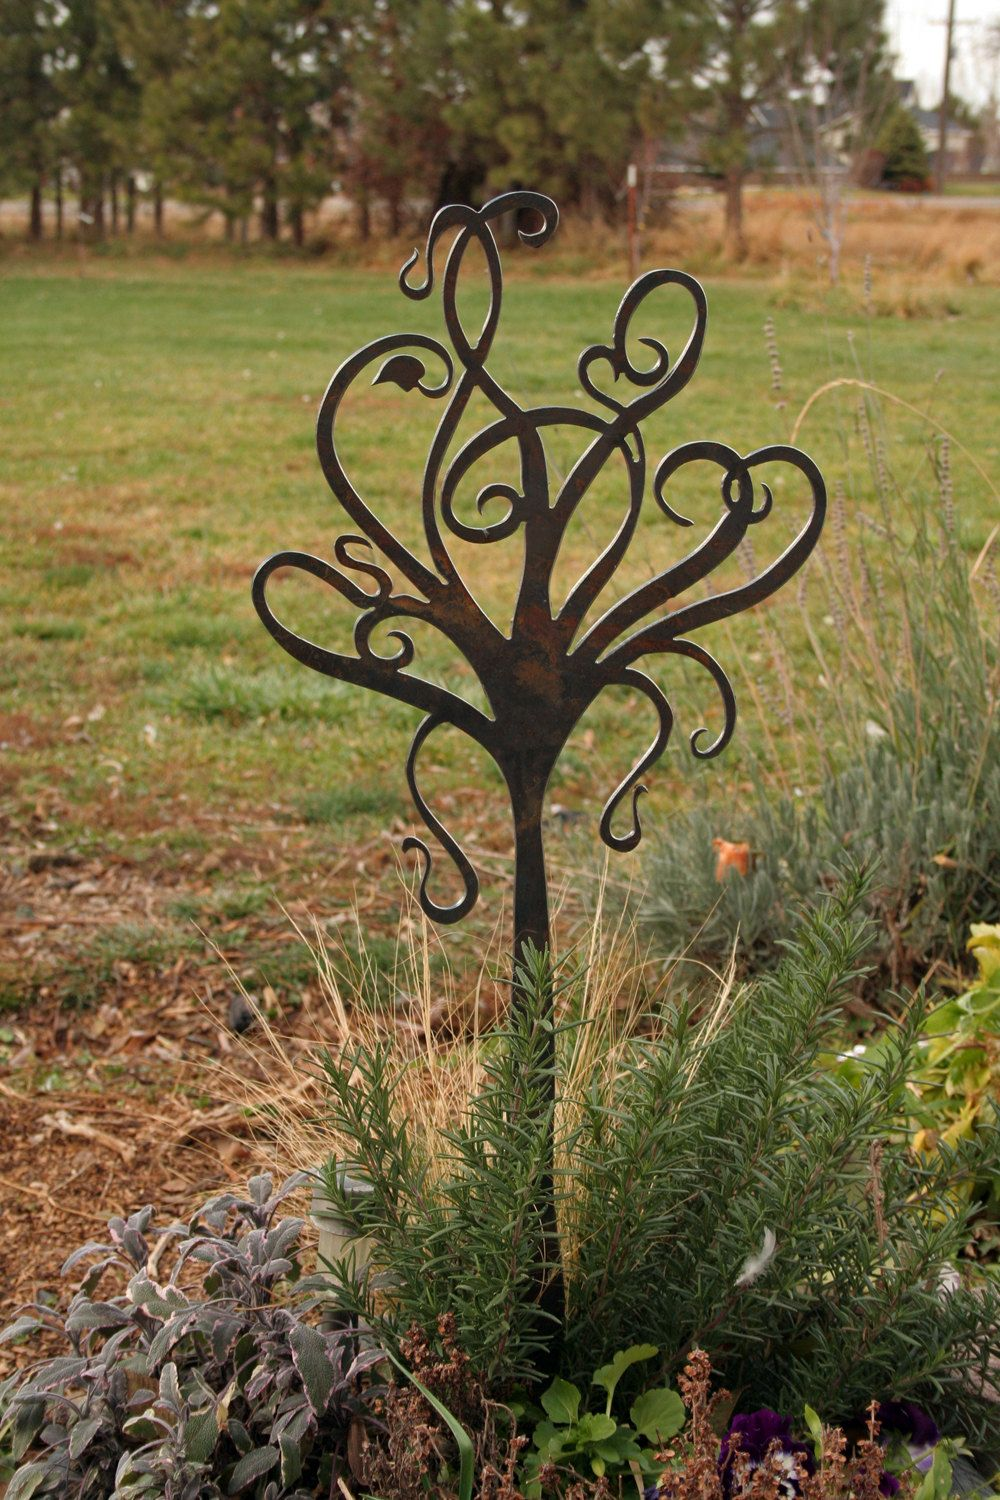 Garden Stake-Whimiscal Tree Design cut from Heavy Steel, via Etsy ...